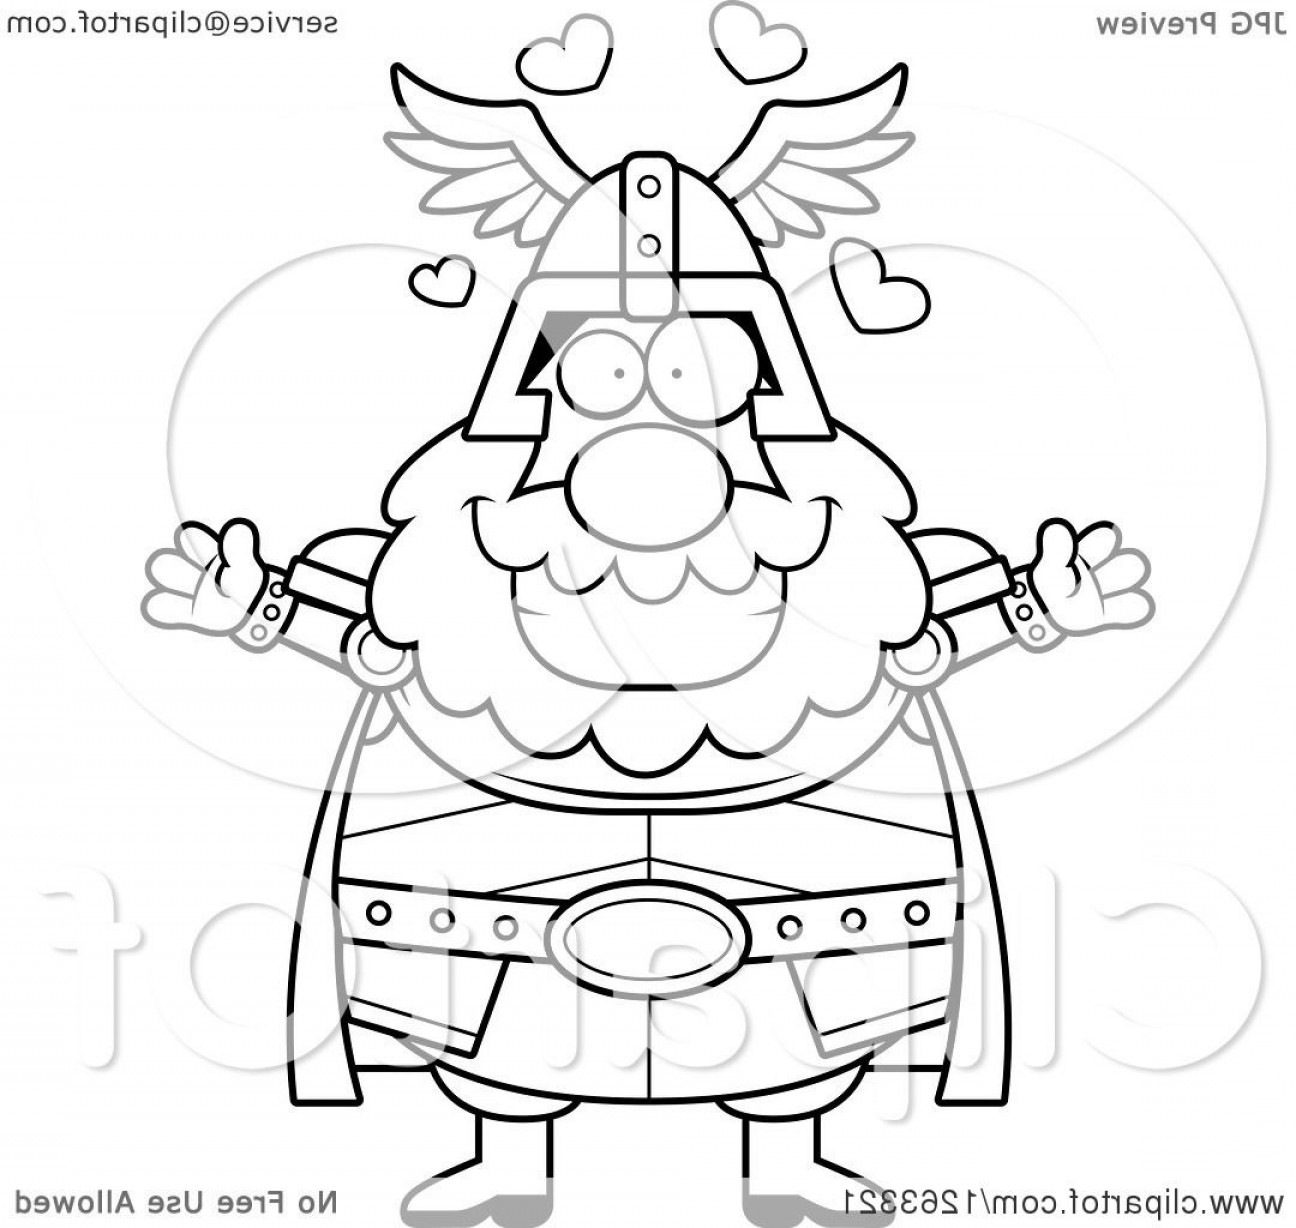 Thor Vector Black: Black And White Cartoon Loving Chubby Thor With Open Arms And Hearts